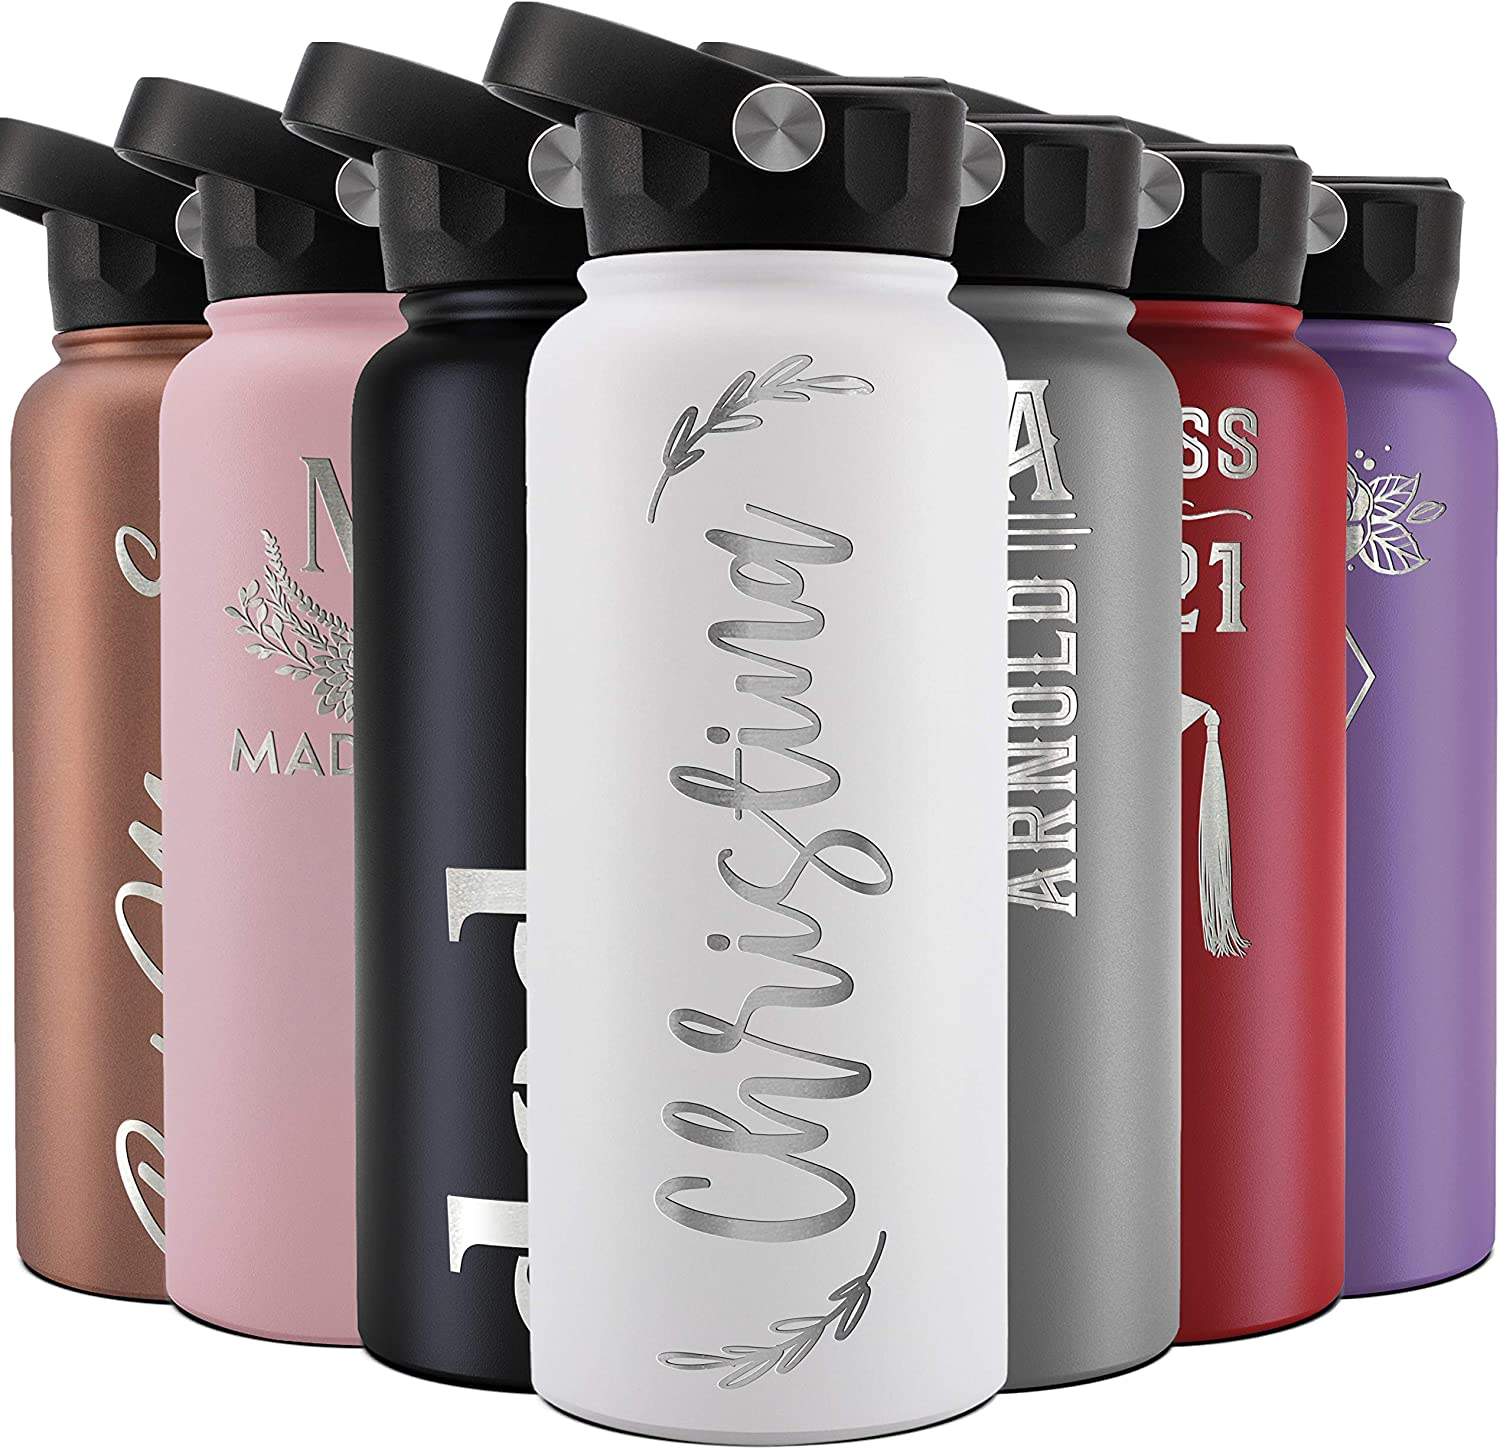 Personalized Water Bottle 大特価 w Lid 品質検査済 Straw Double-Wall Insulated